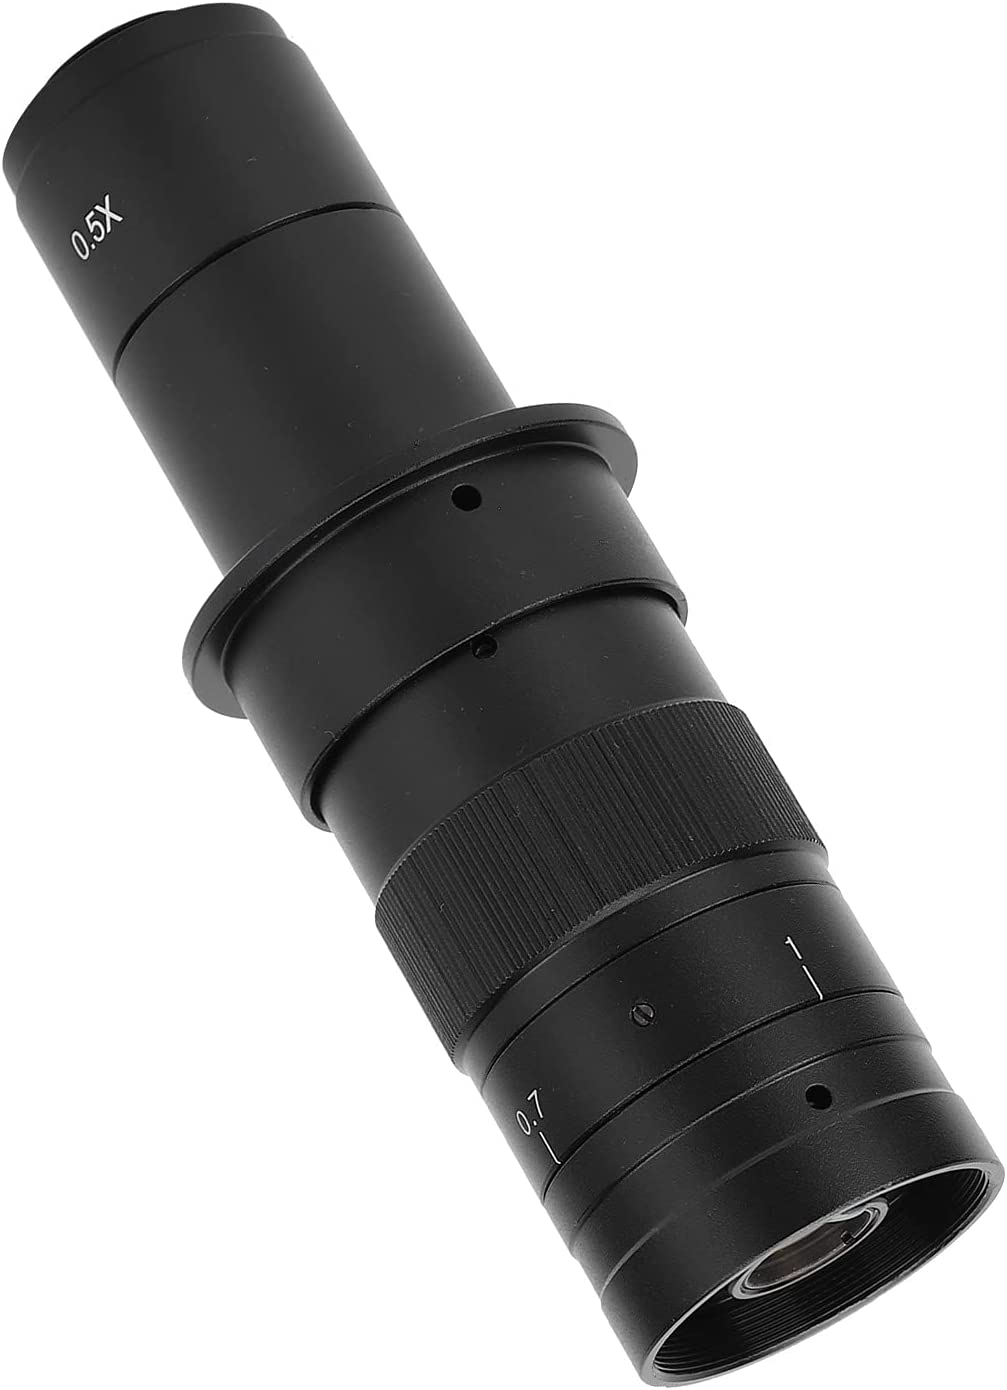 Optical Zoom Lens Vari‑Focal 2MP Alloy for Max 61% OFF Aluminium 67% OFF of fixed price Mos